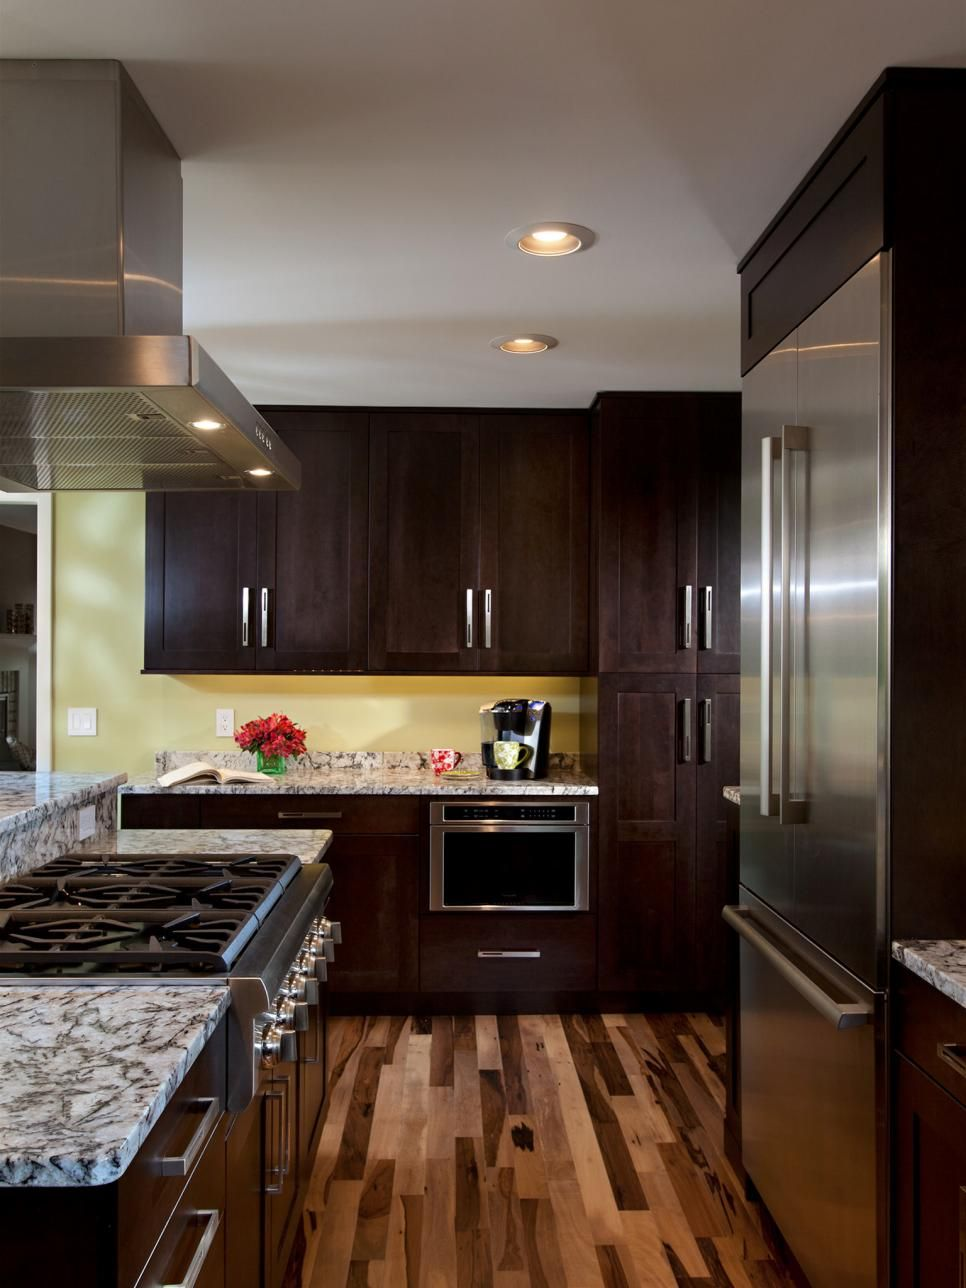 To add contrast to the dark contemporary wood